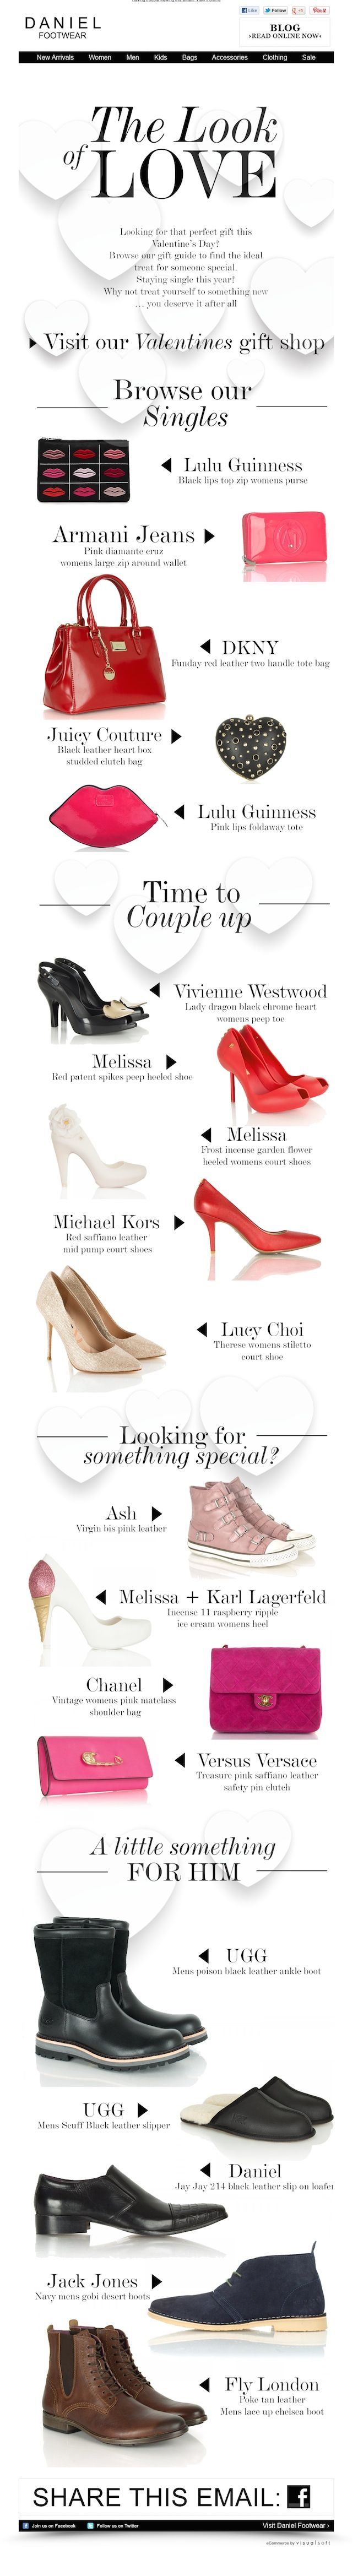 Valentine's Day Inspiration by Daniel Footwear. More Inspiring newsletters: http://freshmail.com/inspiring-newsletters